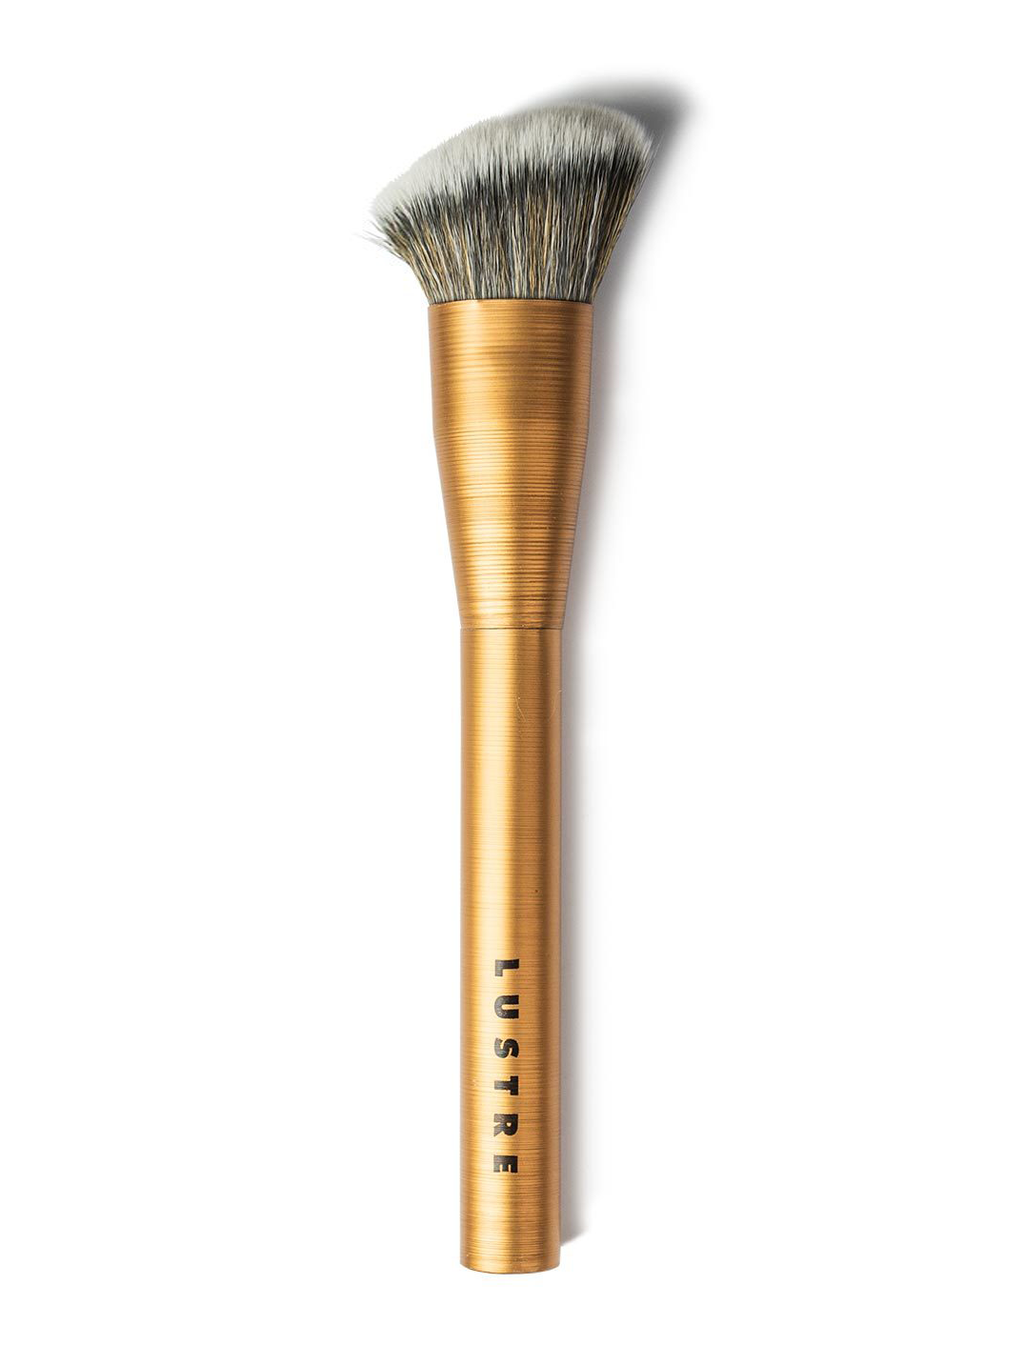 Lustre Pro Makeup Brush F102 Blush Brush